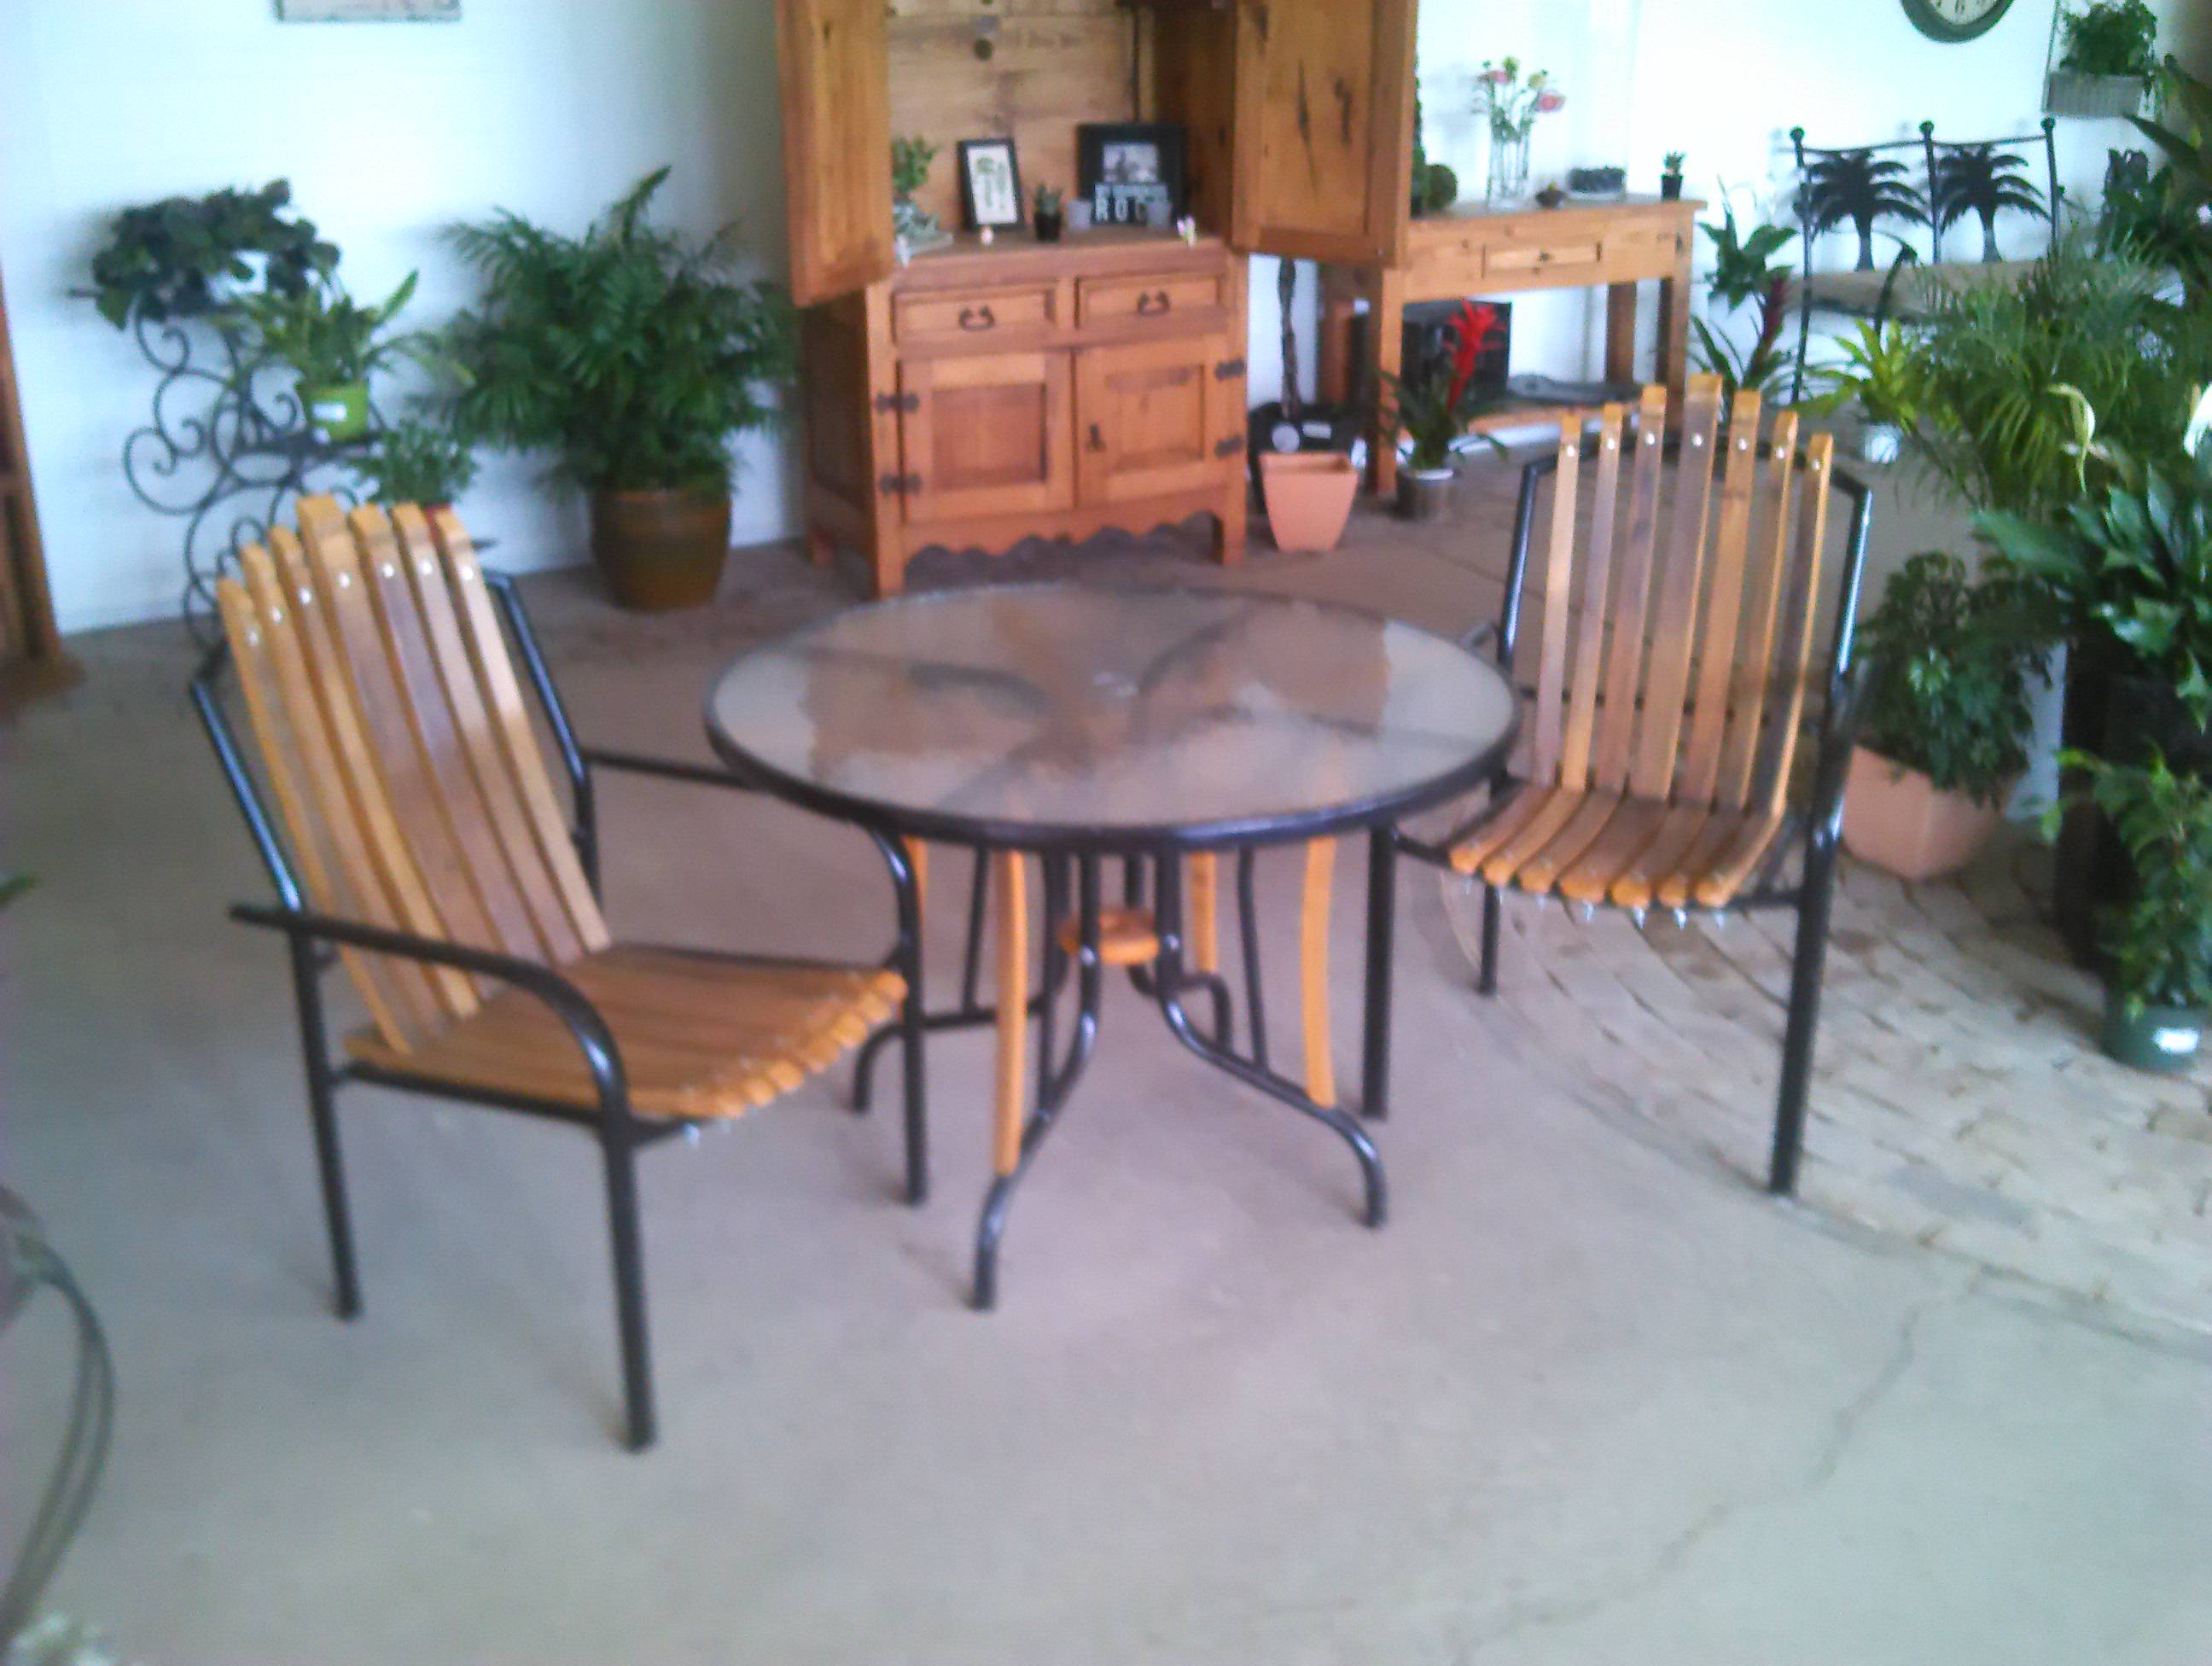 2patiochairs n table display.jpg